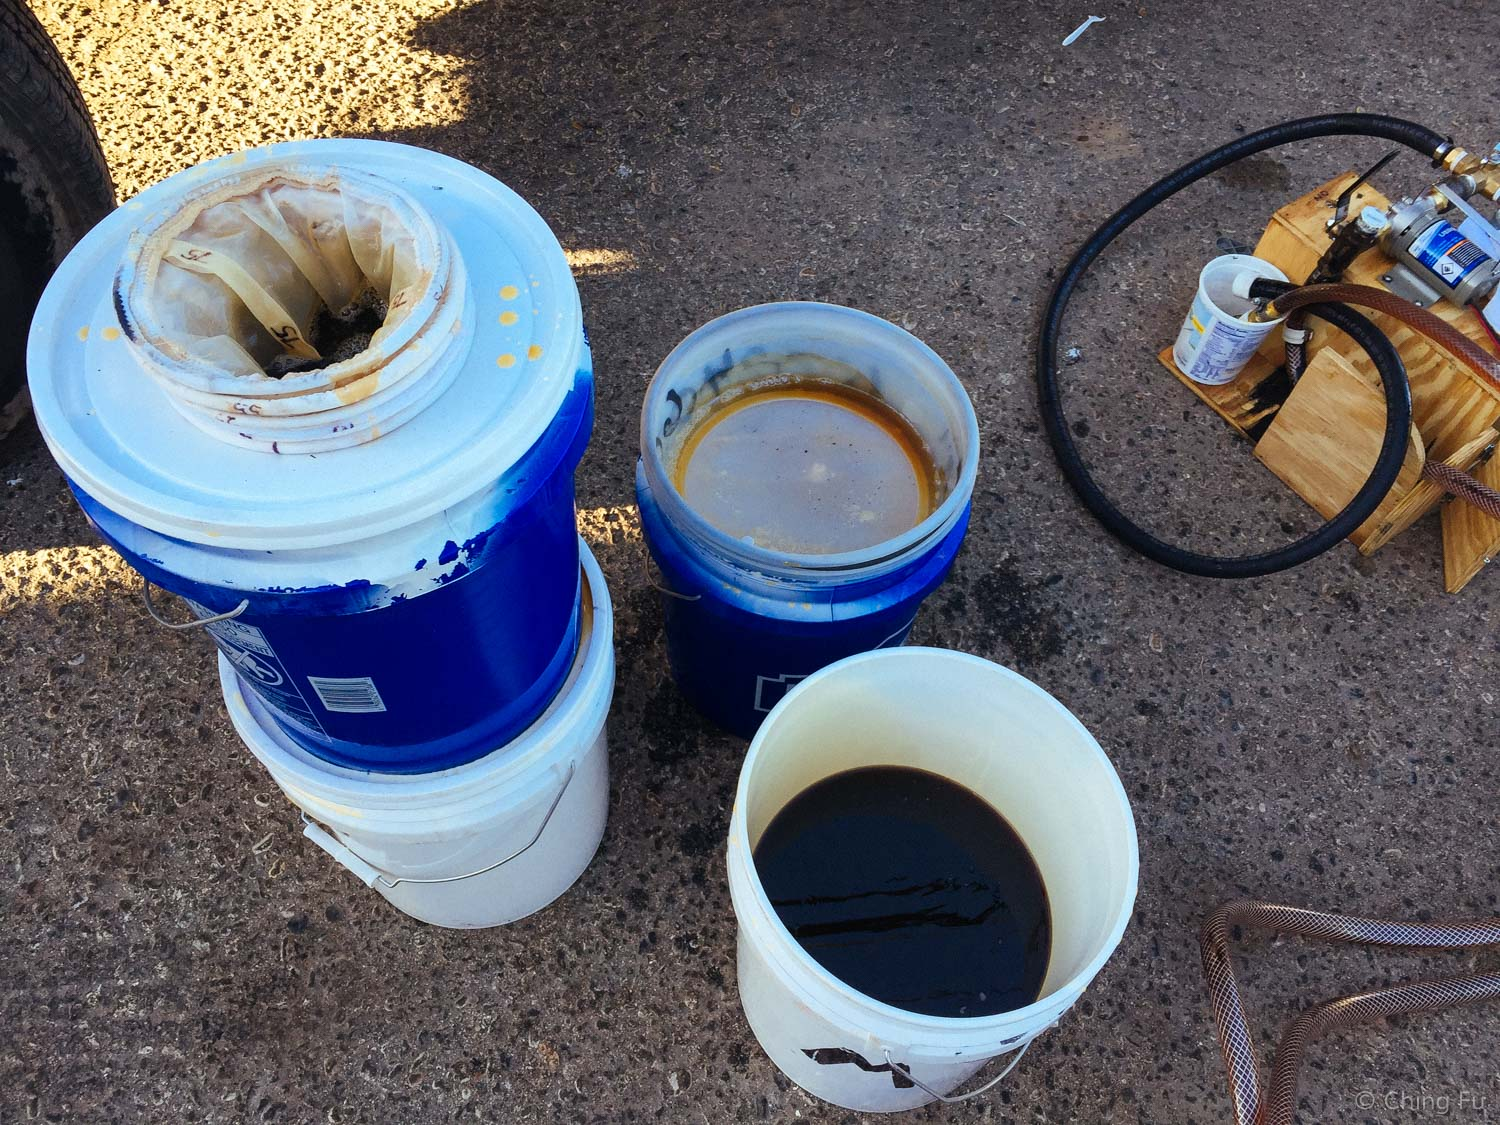 This is what our WVO collection and filtering setup looked like when we first hit the road. The filters on the left are sock filters. We used various micron sized filters to catch all sizes of debris.